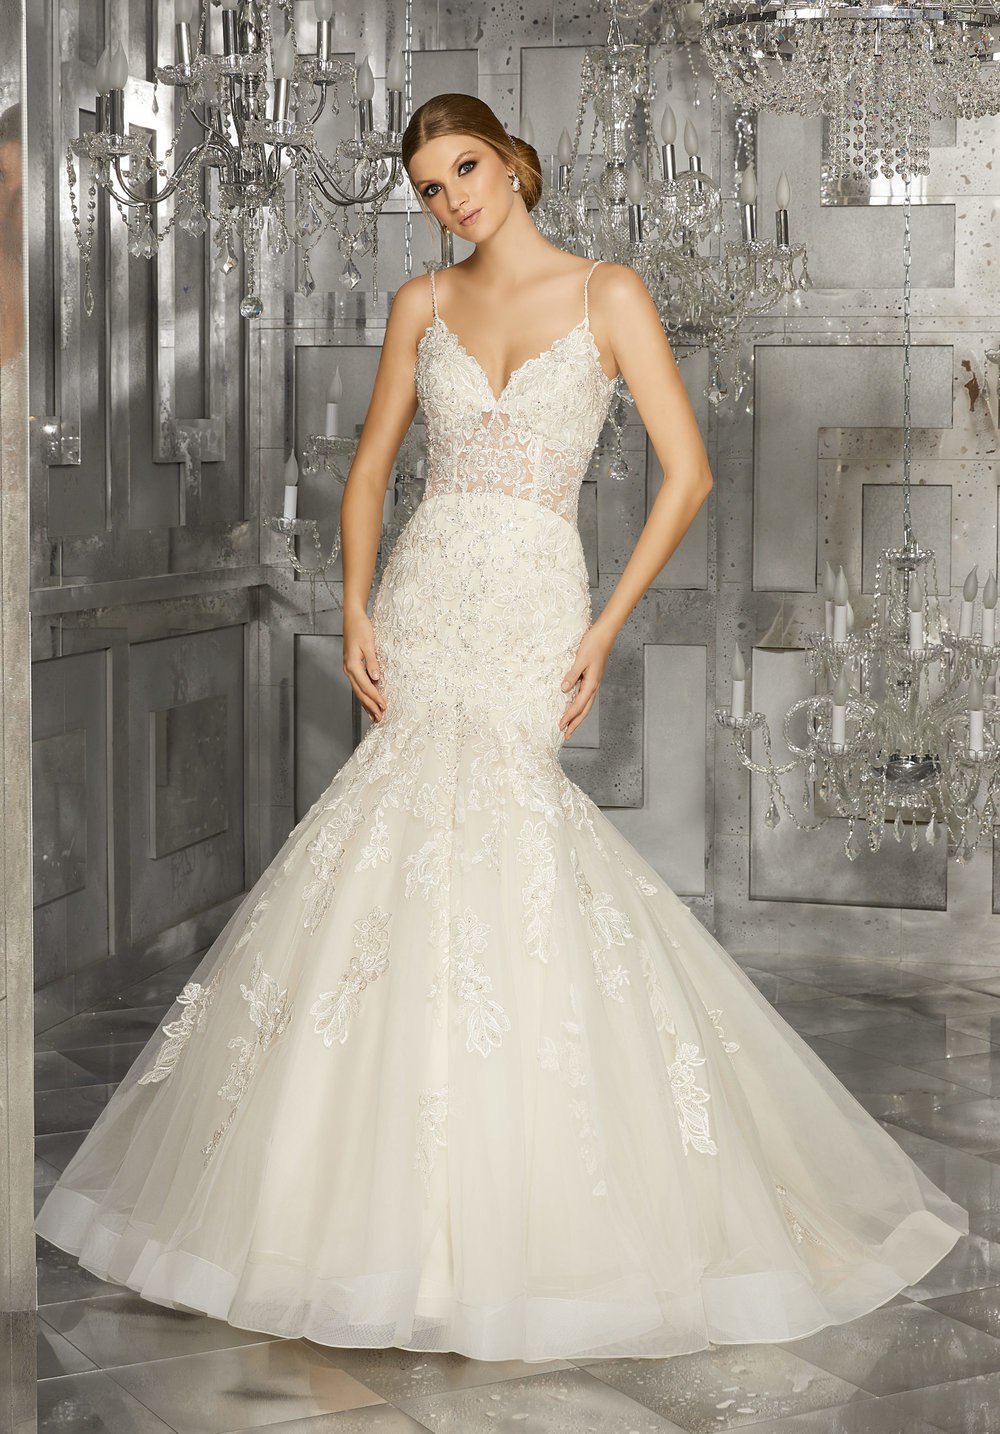 Mori Lee Bridal Collection | Wedding Dresses & Bridal Gowns ...